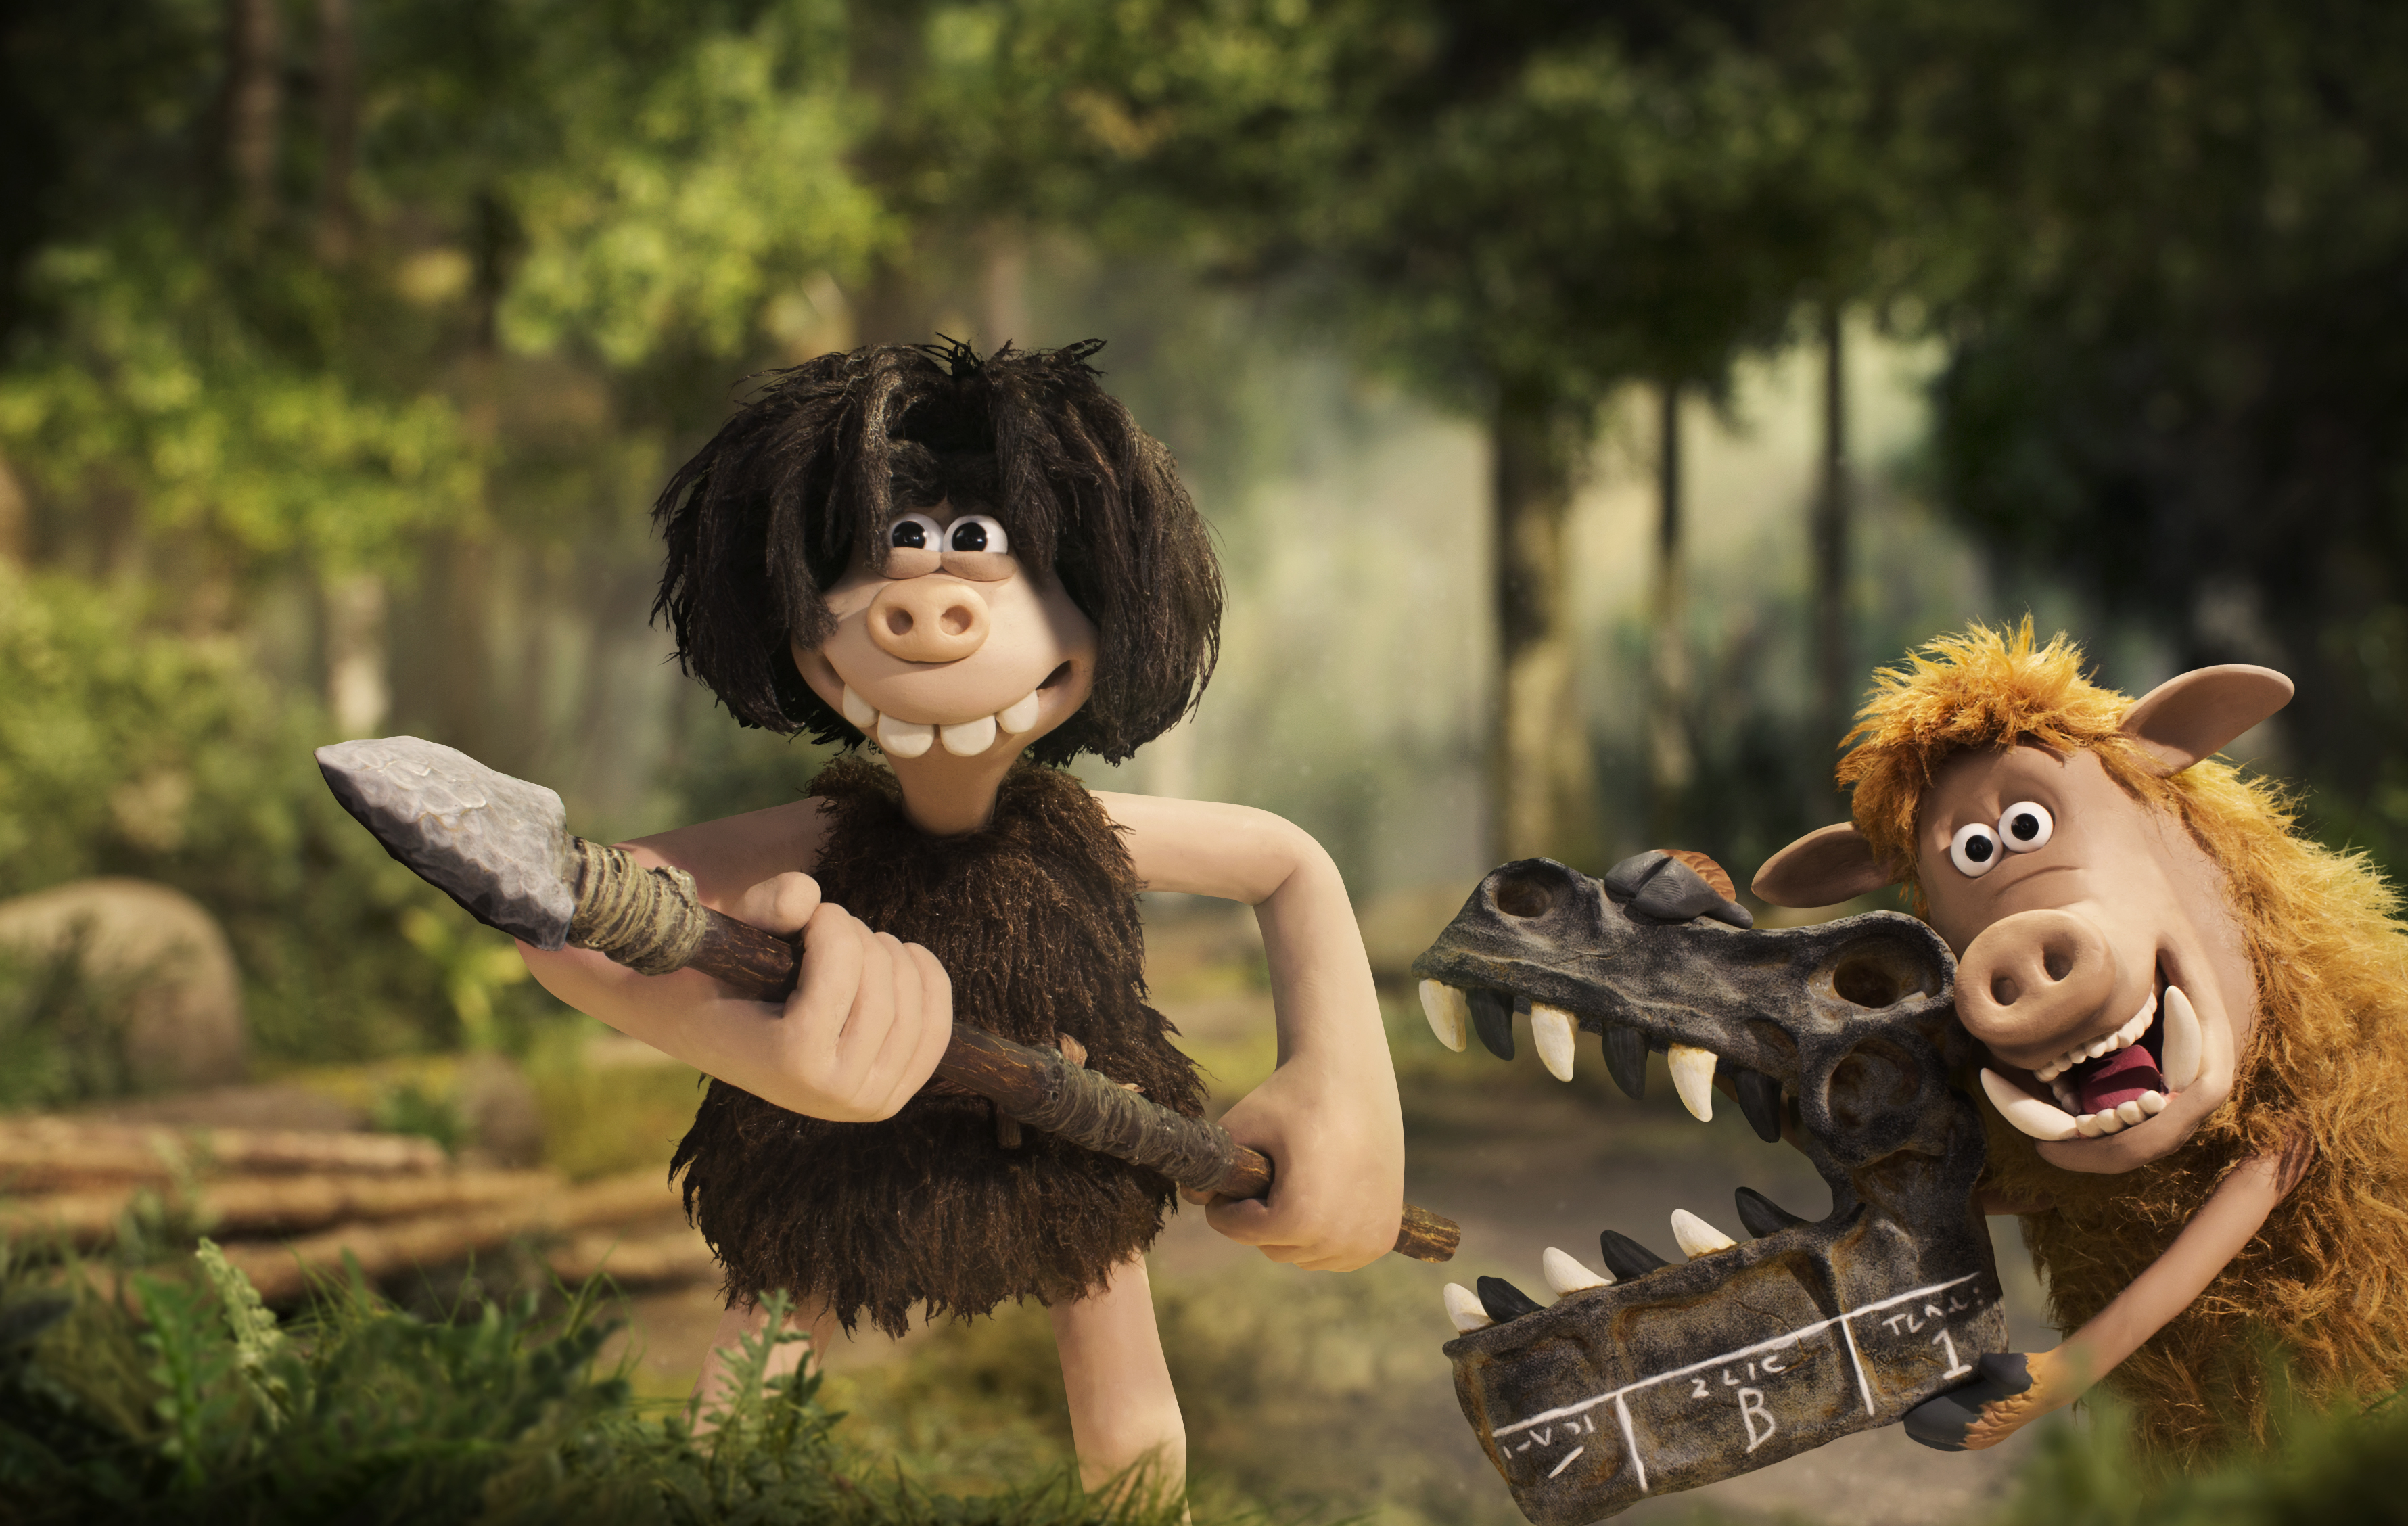 Early Man – Dug and Hognob. Publicity image from S